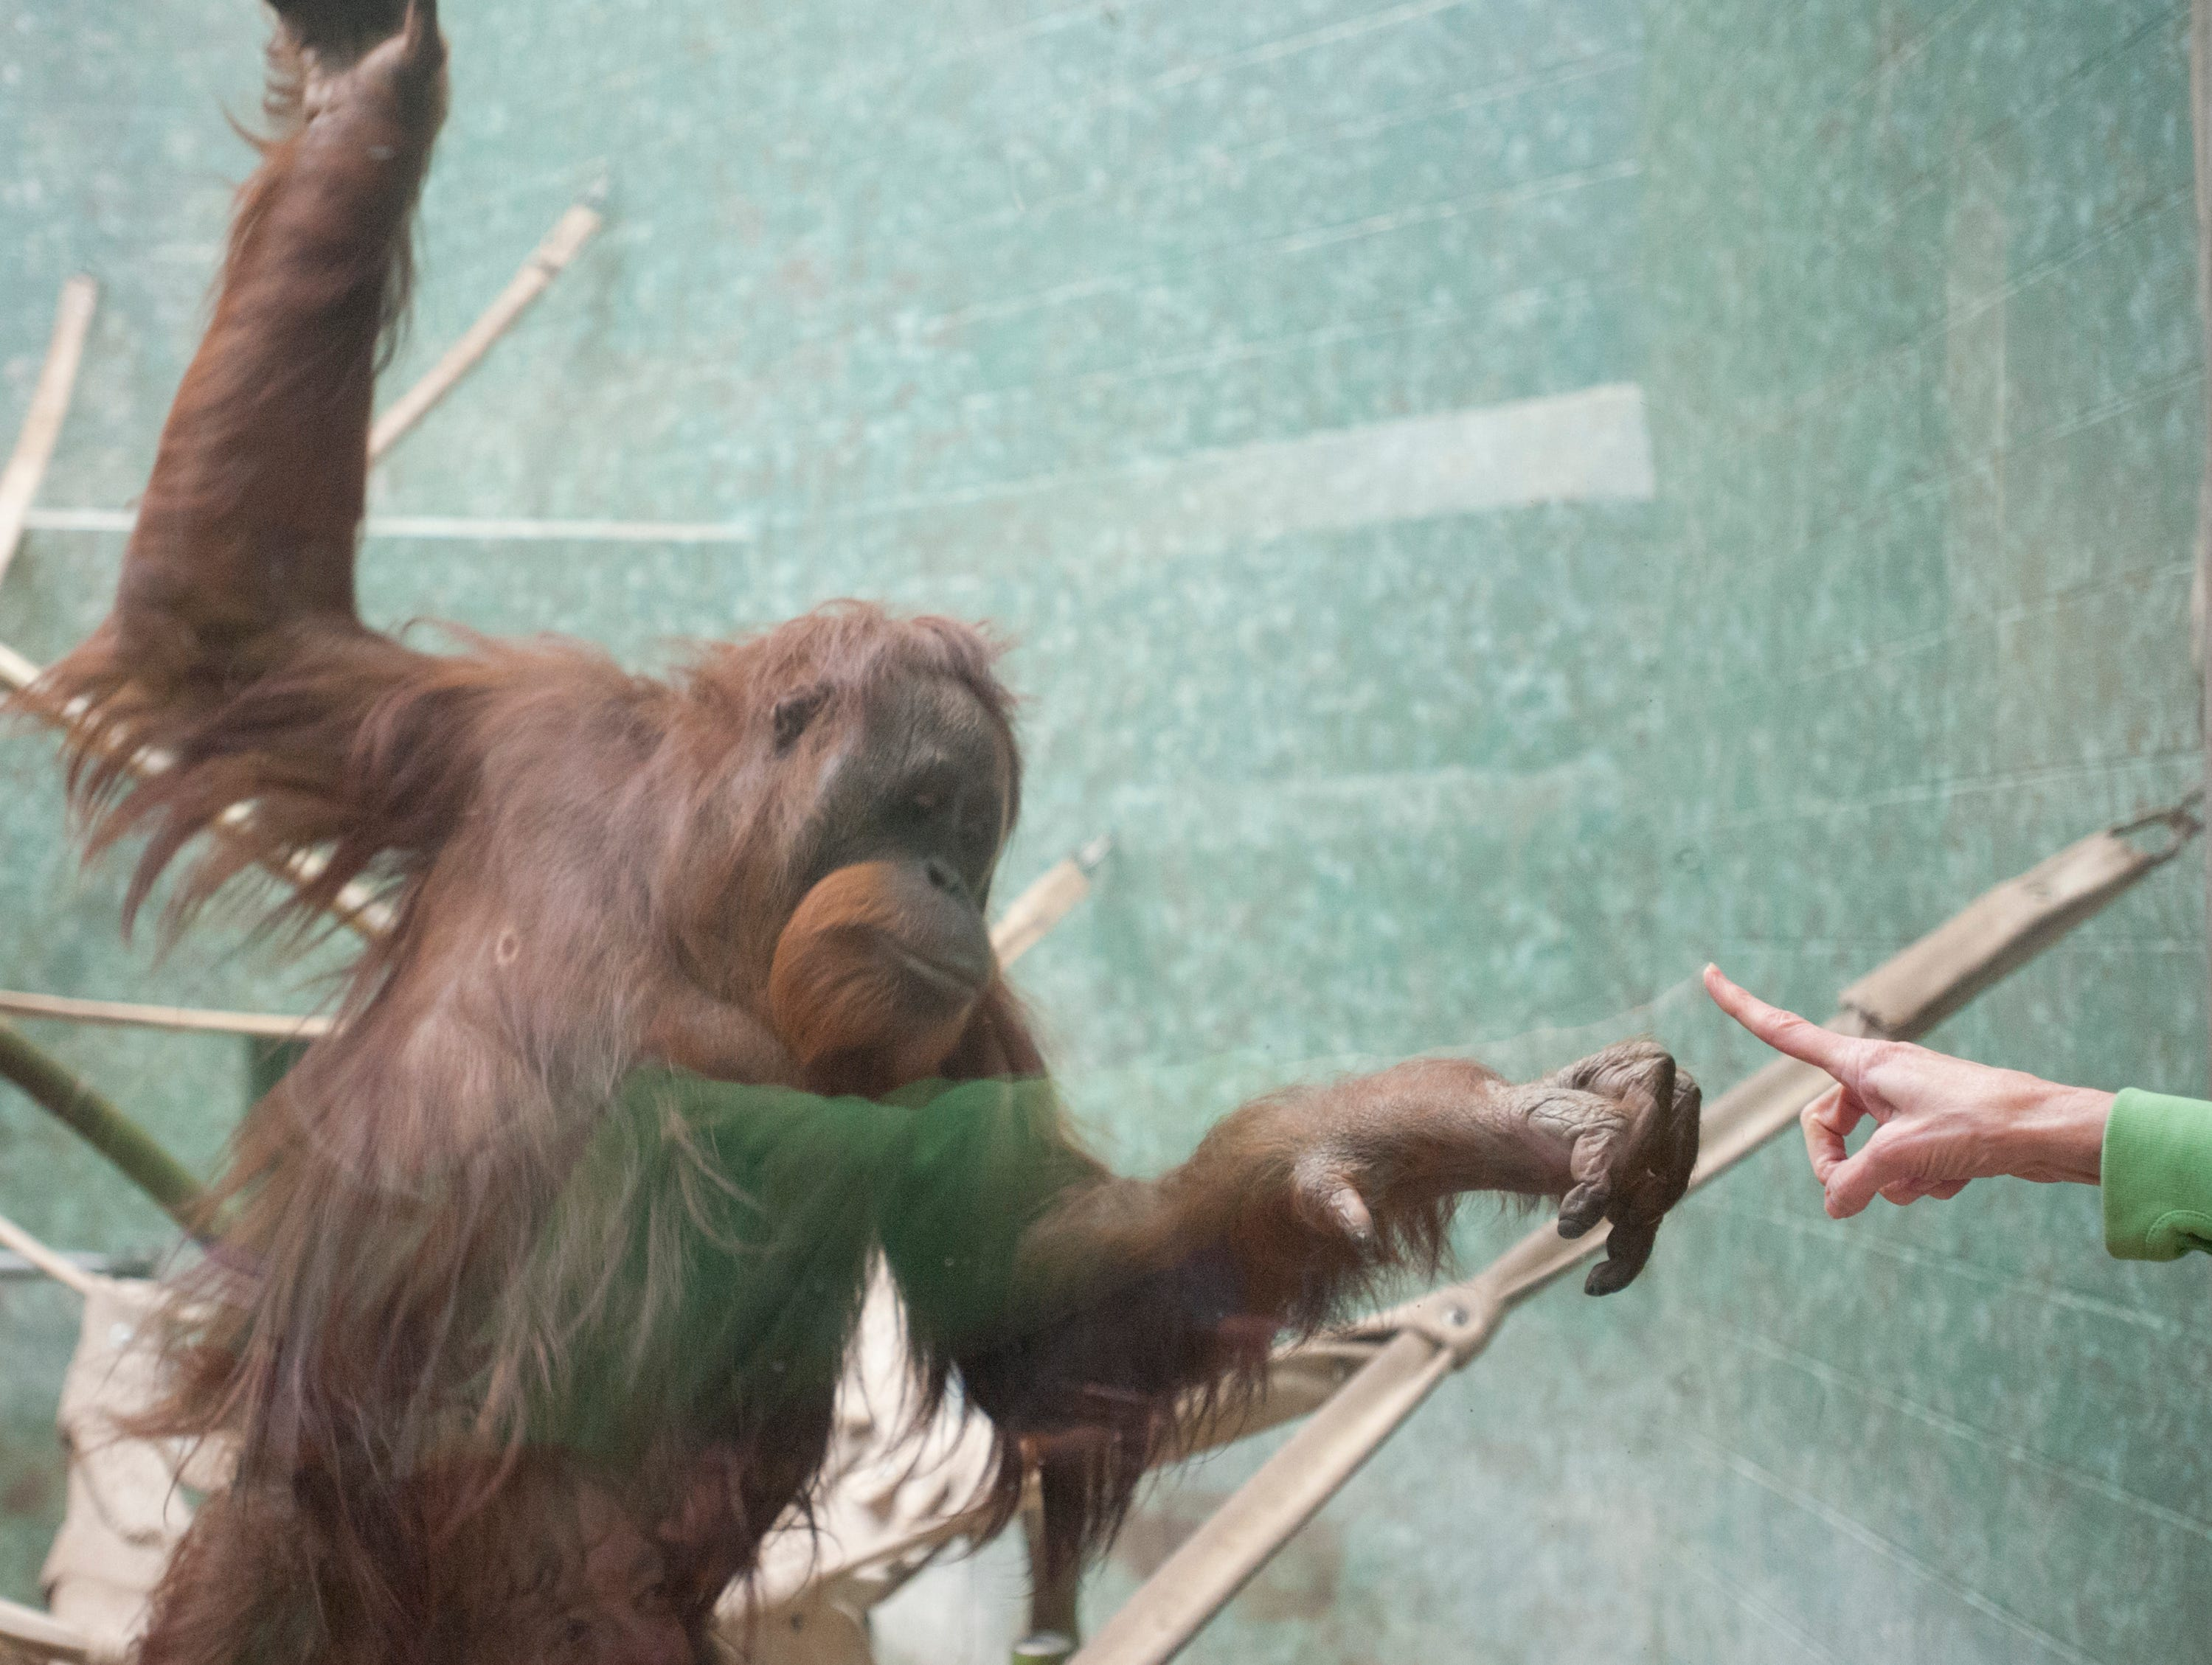 Bella, an orangutan at the Louisville Zoo reaches out to touch a human finger through a glass partition. November 04, 2018